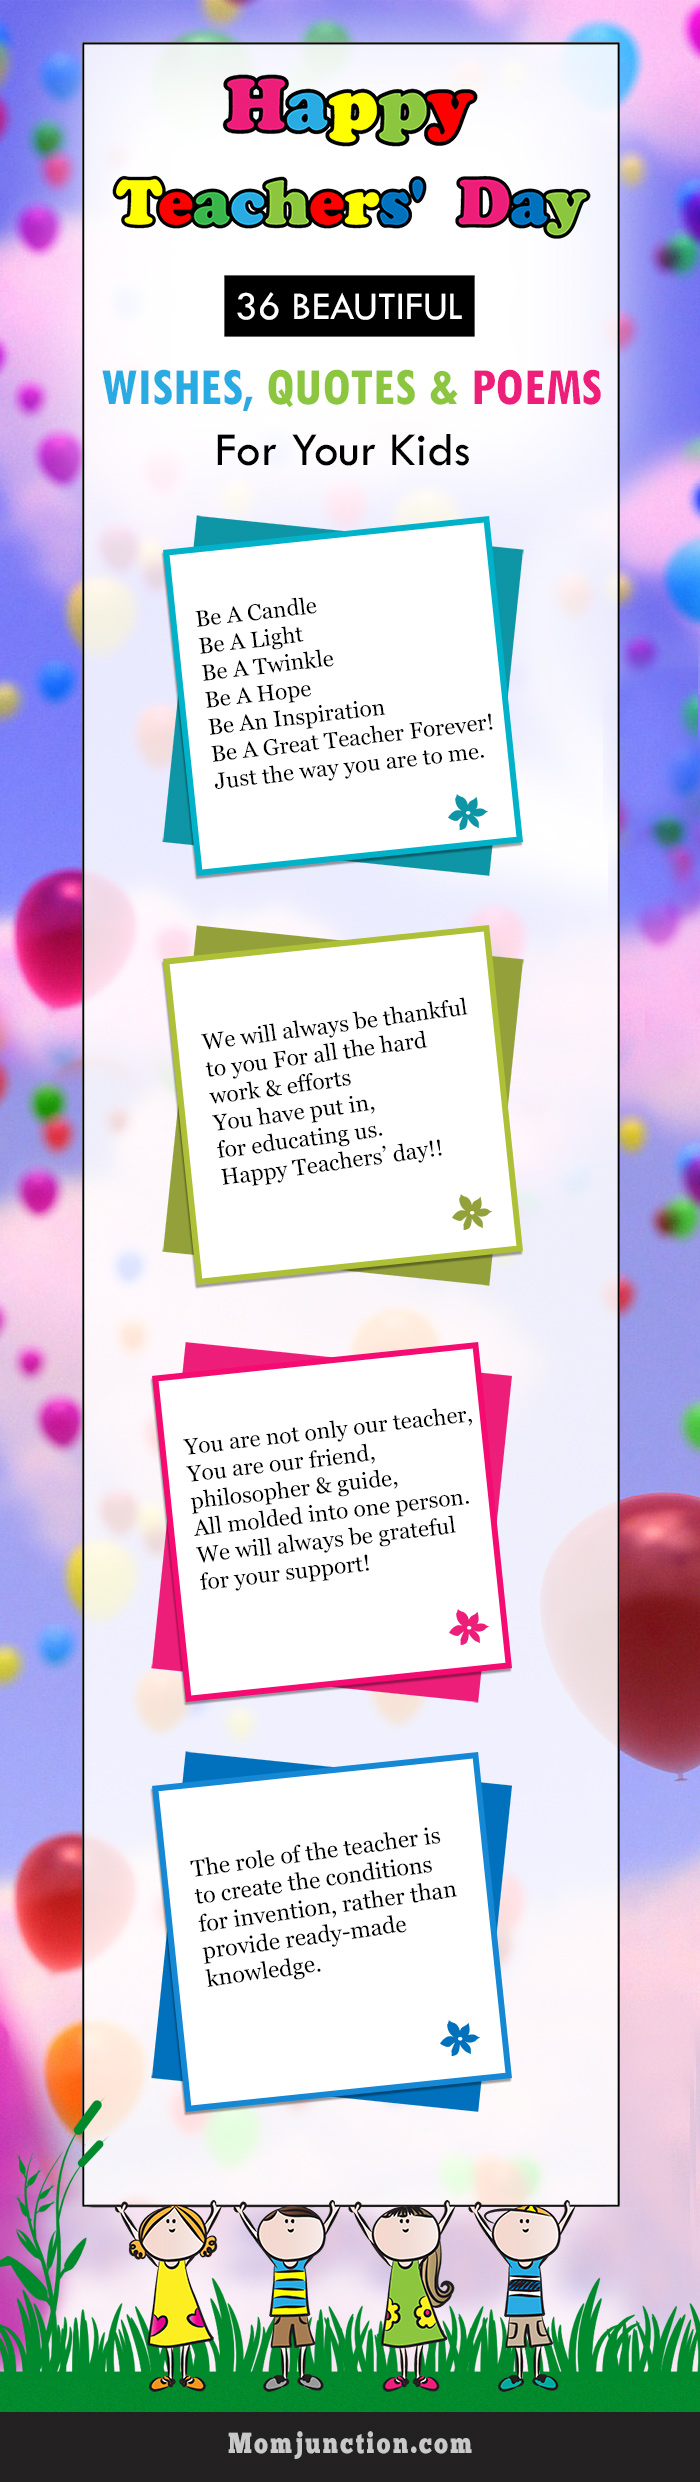 36 beautiful teacher's day quotes wishes  poems for kids